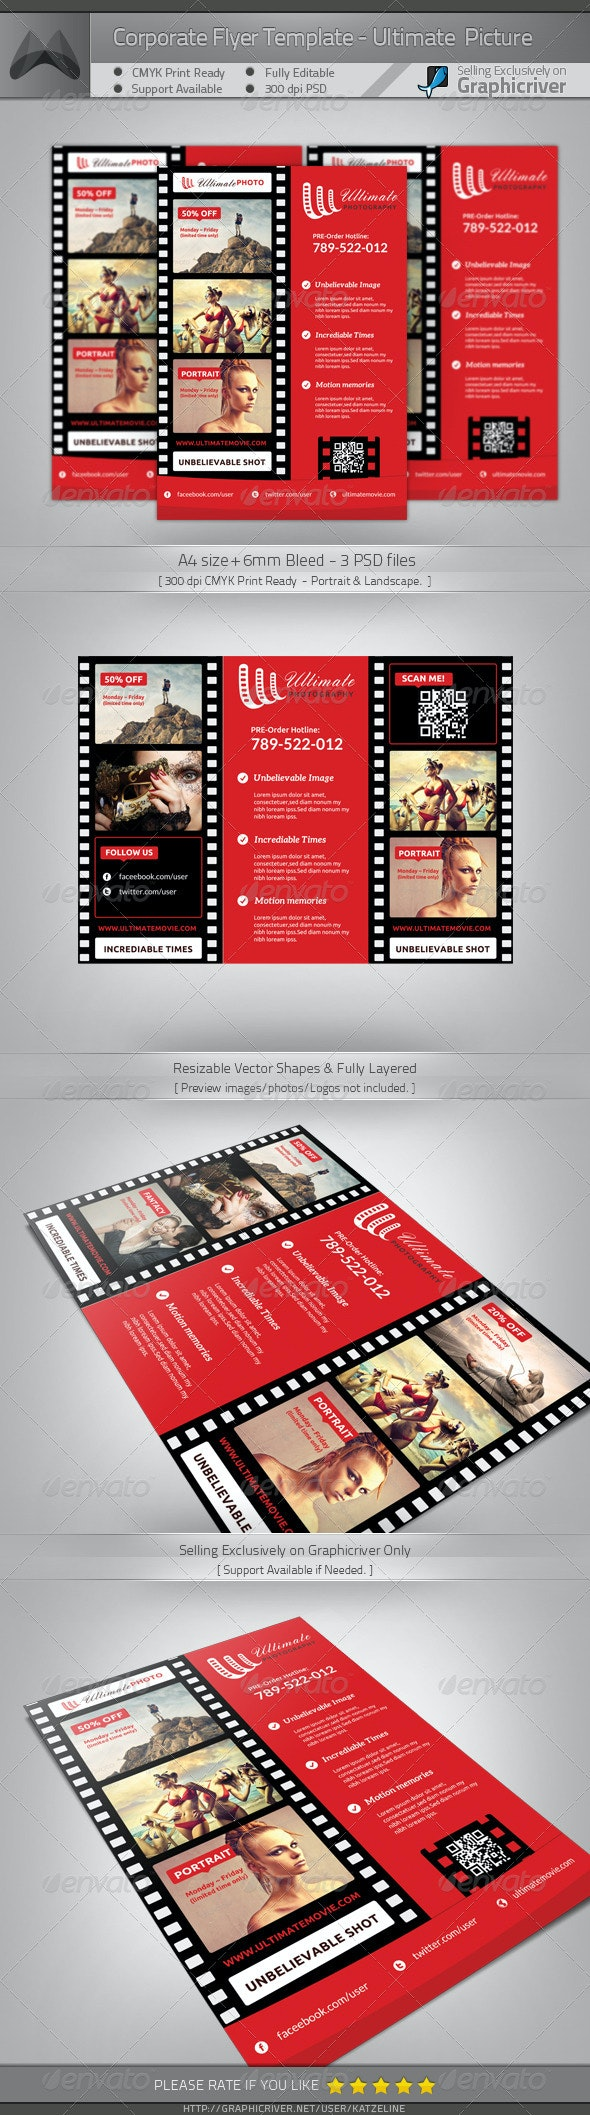 Ultimate Movie and Photography - A4 Flyer - Commerce Flyers